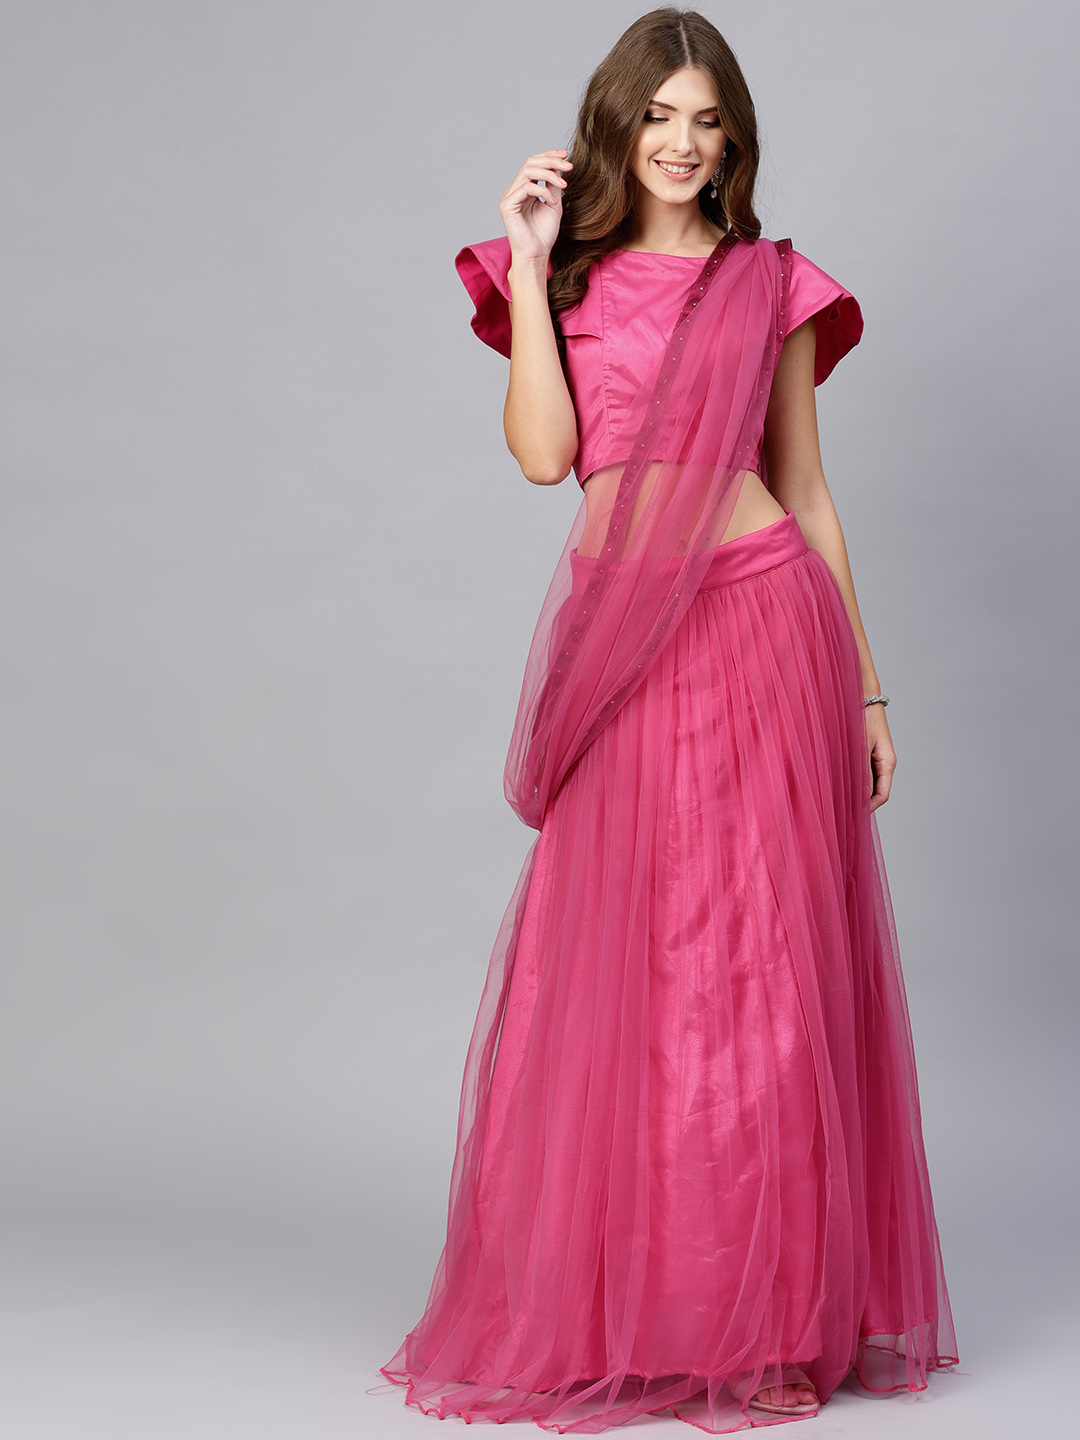 27-sarees-for-farewell-Pink-Solid-Net-Lehenga-Saree